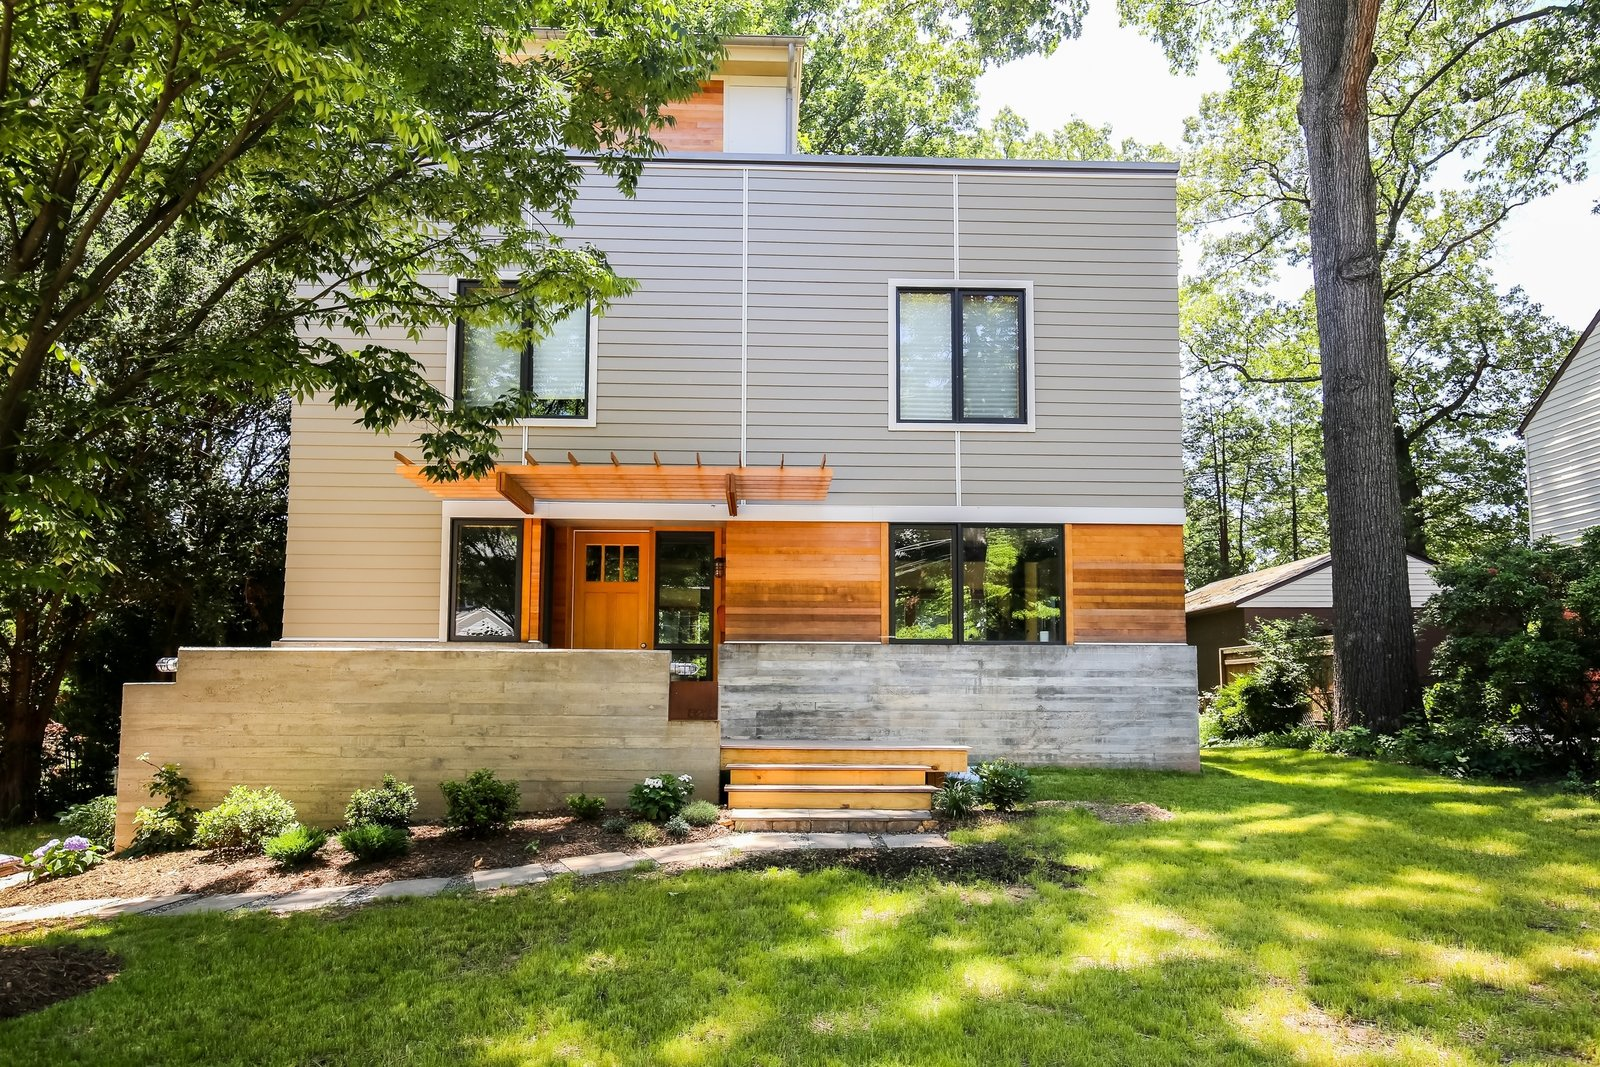 Outdoor white(out) house: keeping within the footprint of the modest colonial that once stood here, the new home is certified green by the county of Arlington, VA.  white(out) house